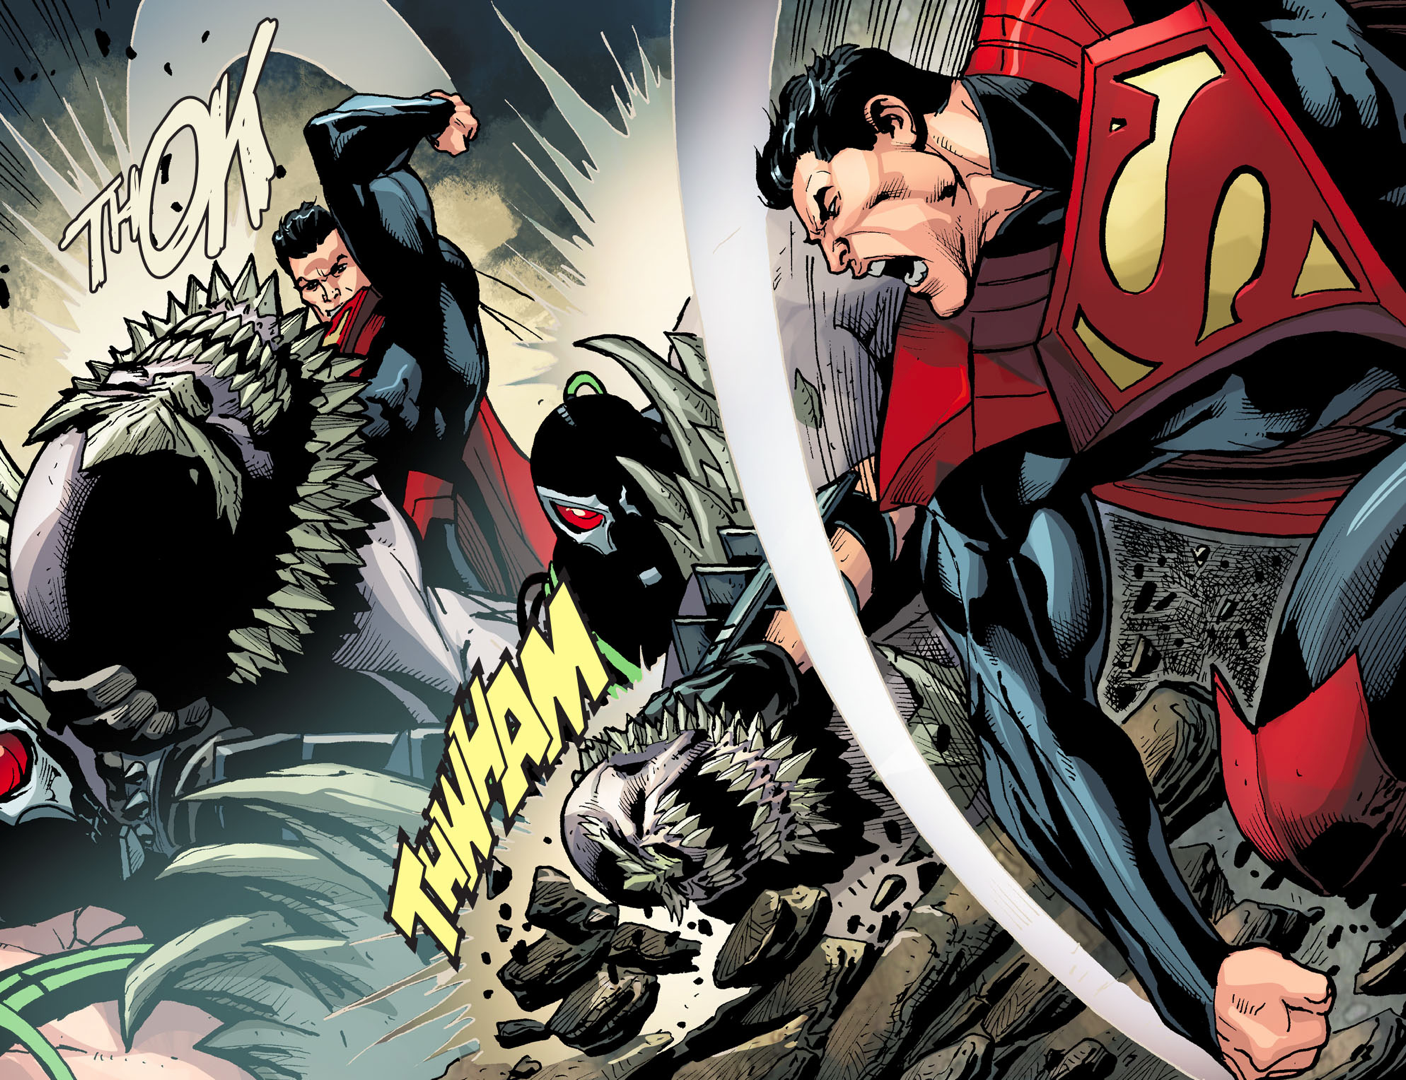 Superman And Bane Vs Doomsday Injustice Gods Among Us Comicnewbies